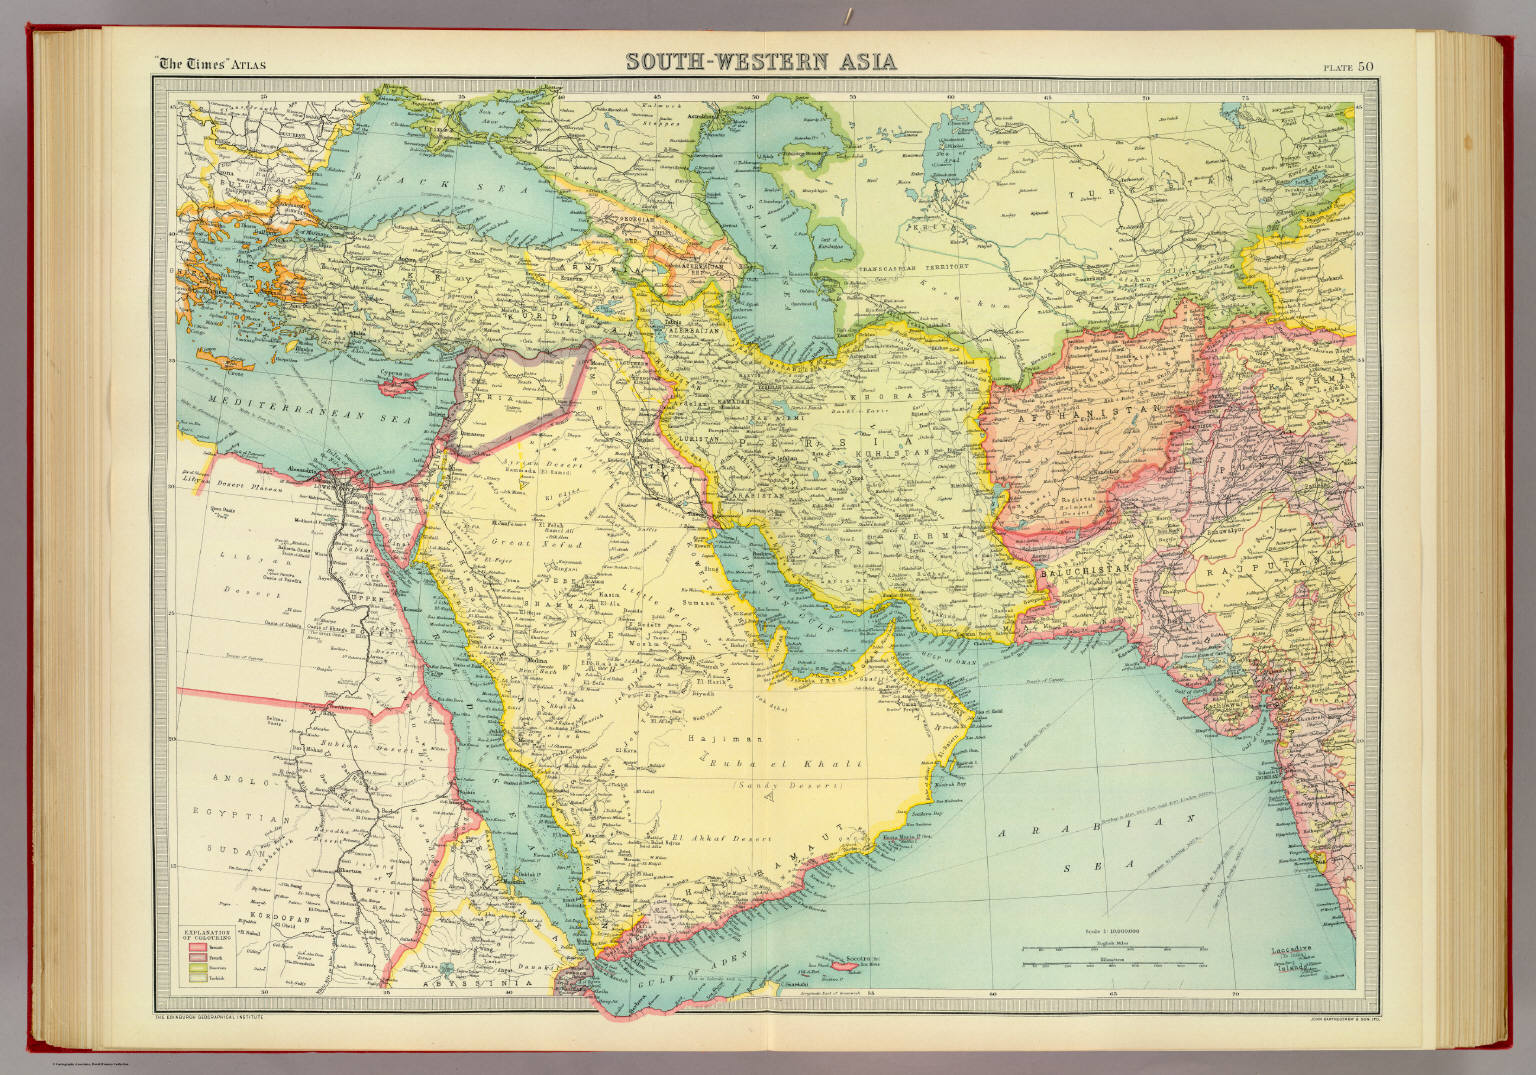 South-western Asia. - David Rumsey Historical Map Collection